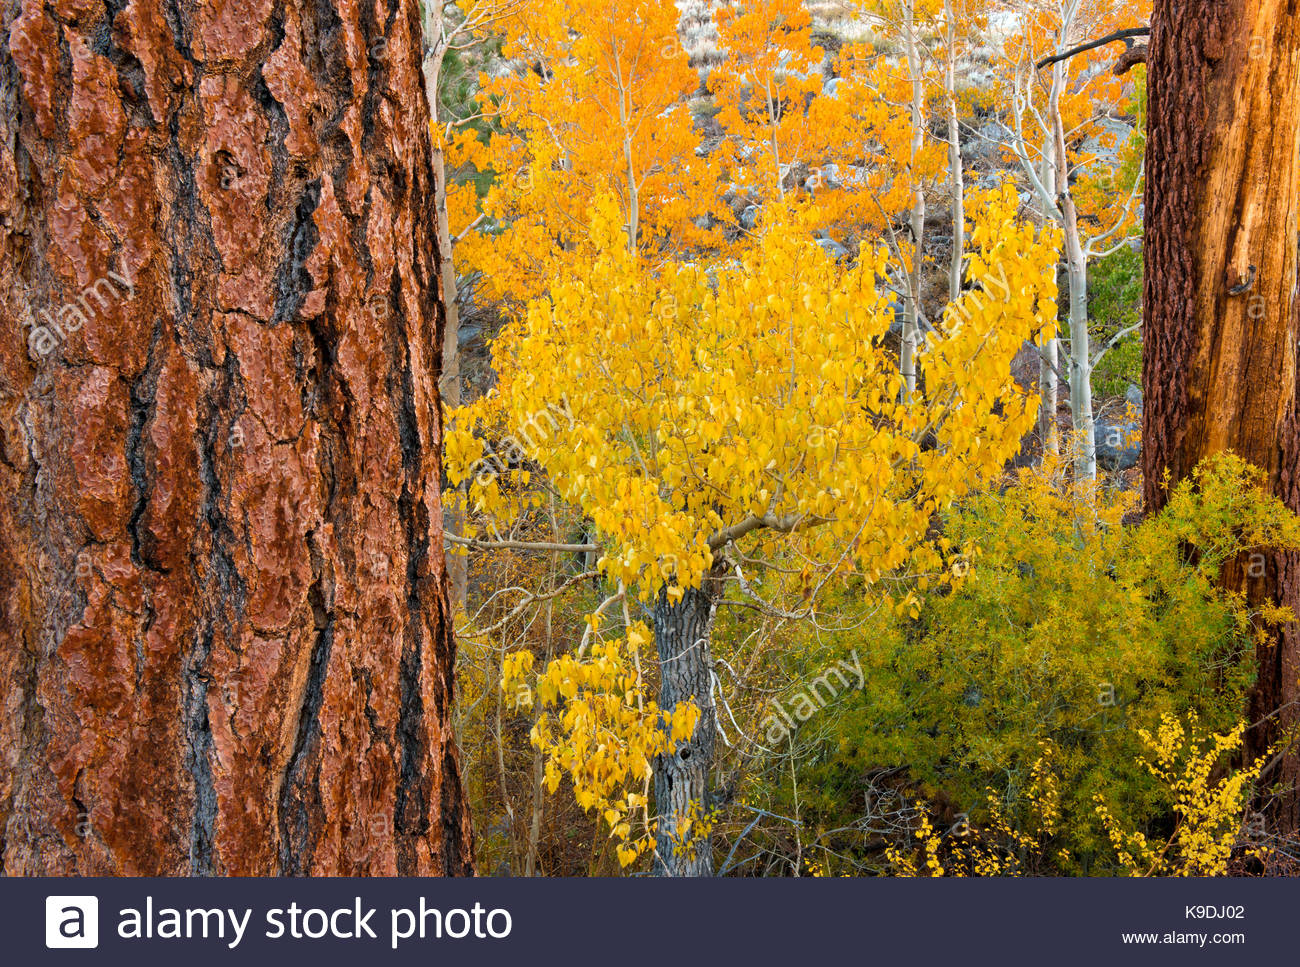 Jeffrey Pine, Cottonwood, Aspen and Willow, Inyo National Forest, Mono County, Caifornia - Stock Image